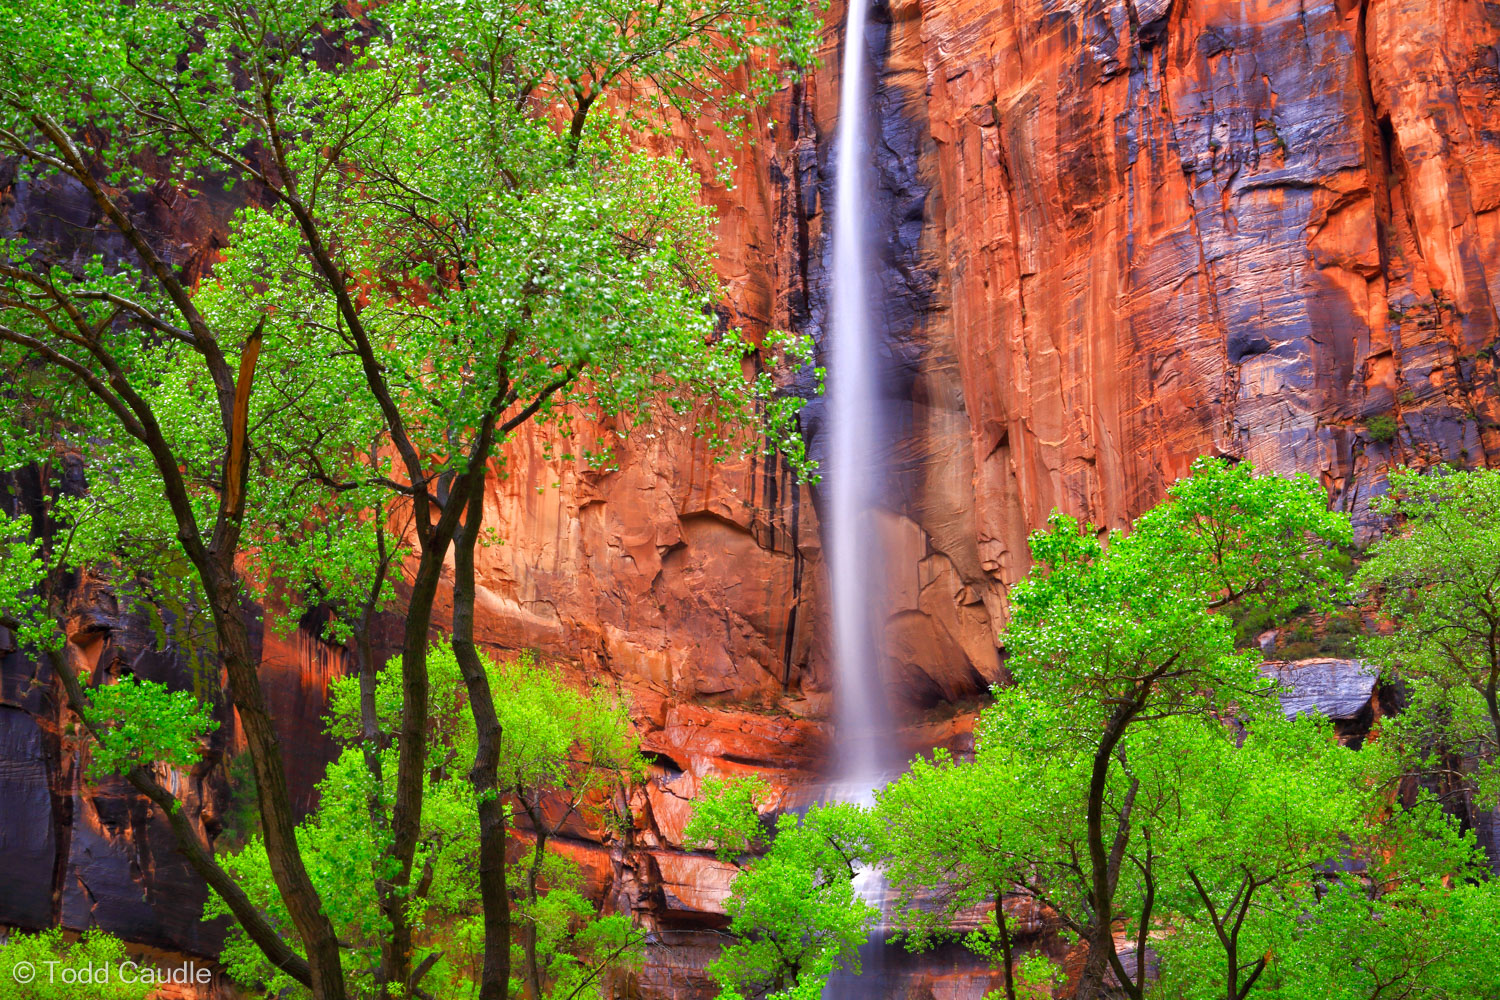 The steep walls of Zion Canyon are usually dry, but when rain storms sweep through the area, waterfalls magically appear. The...